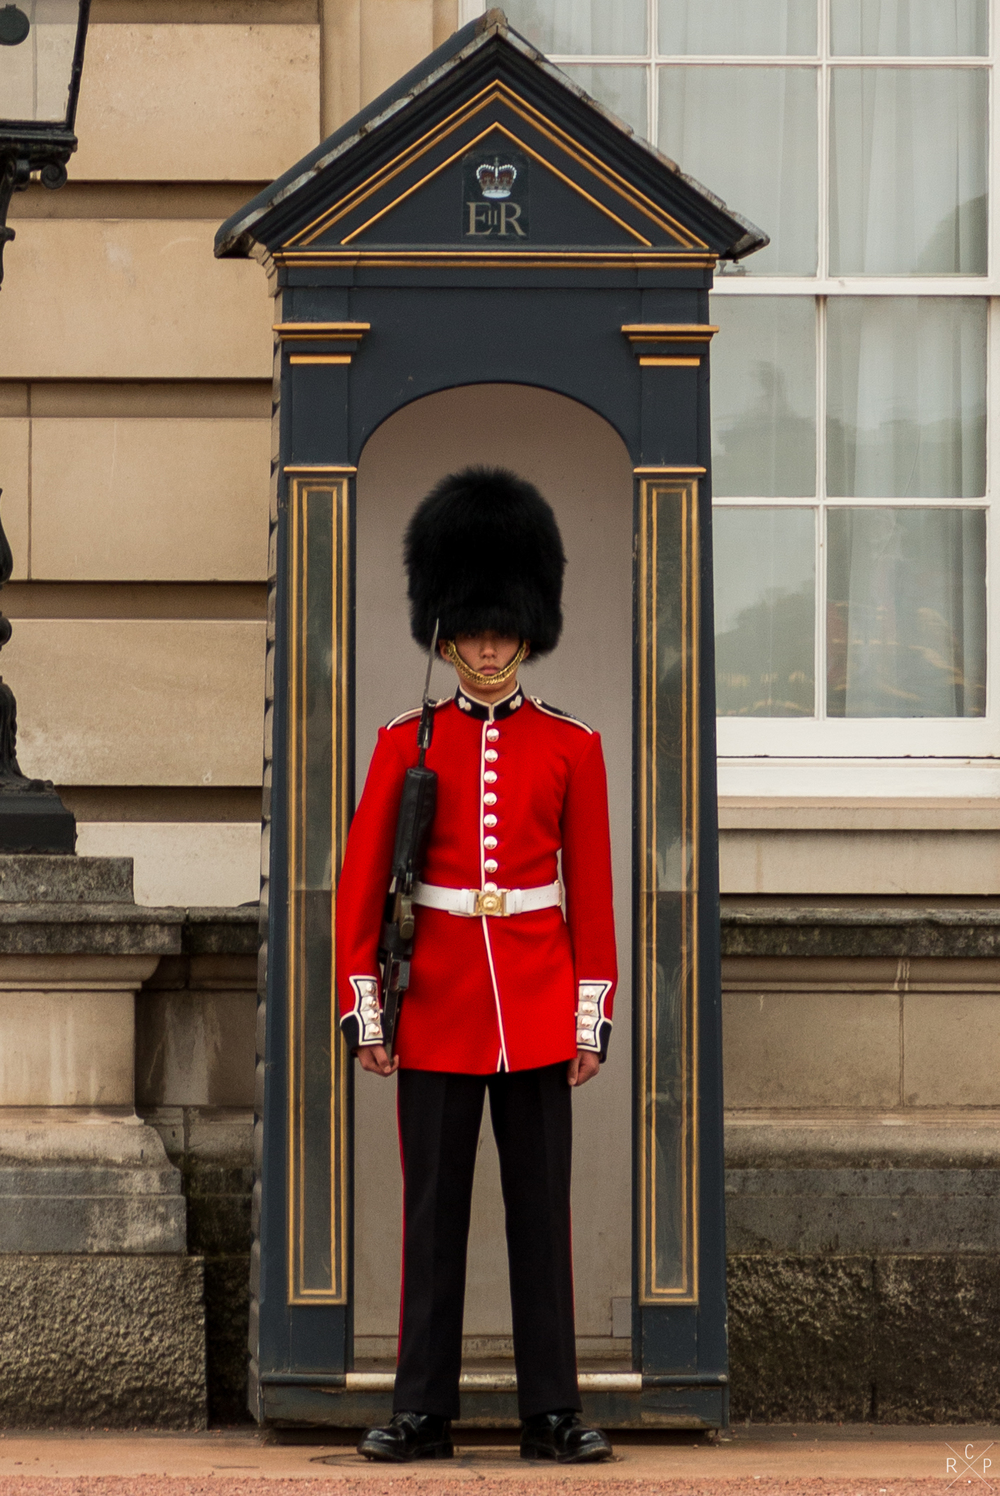 Royal Guard - Buckingham Palace, London, England 31/07/2016